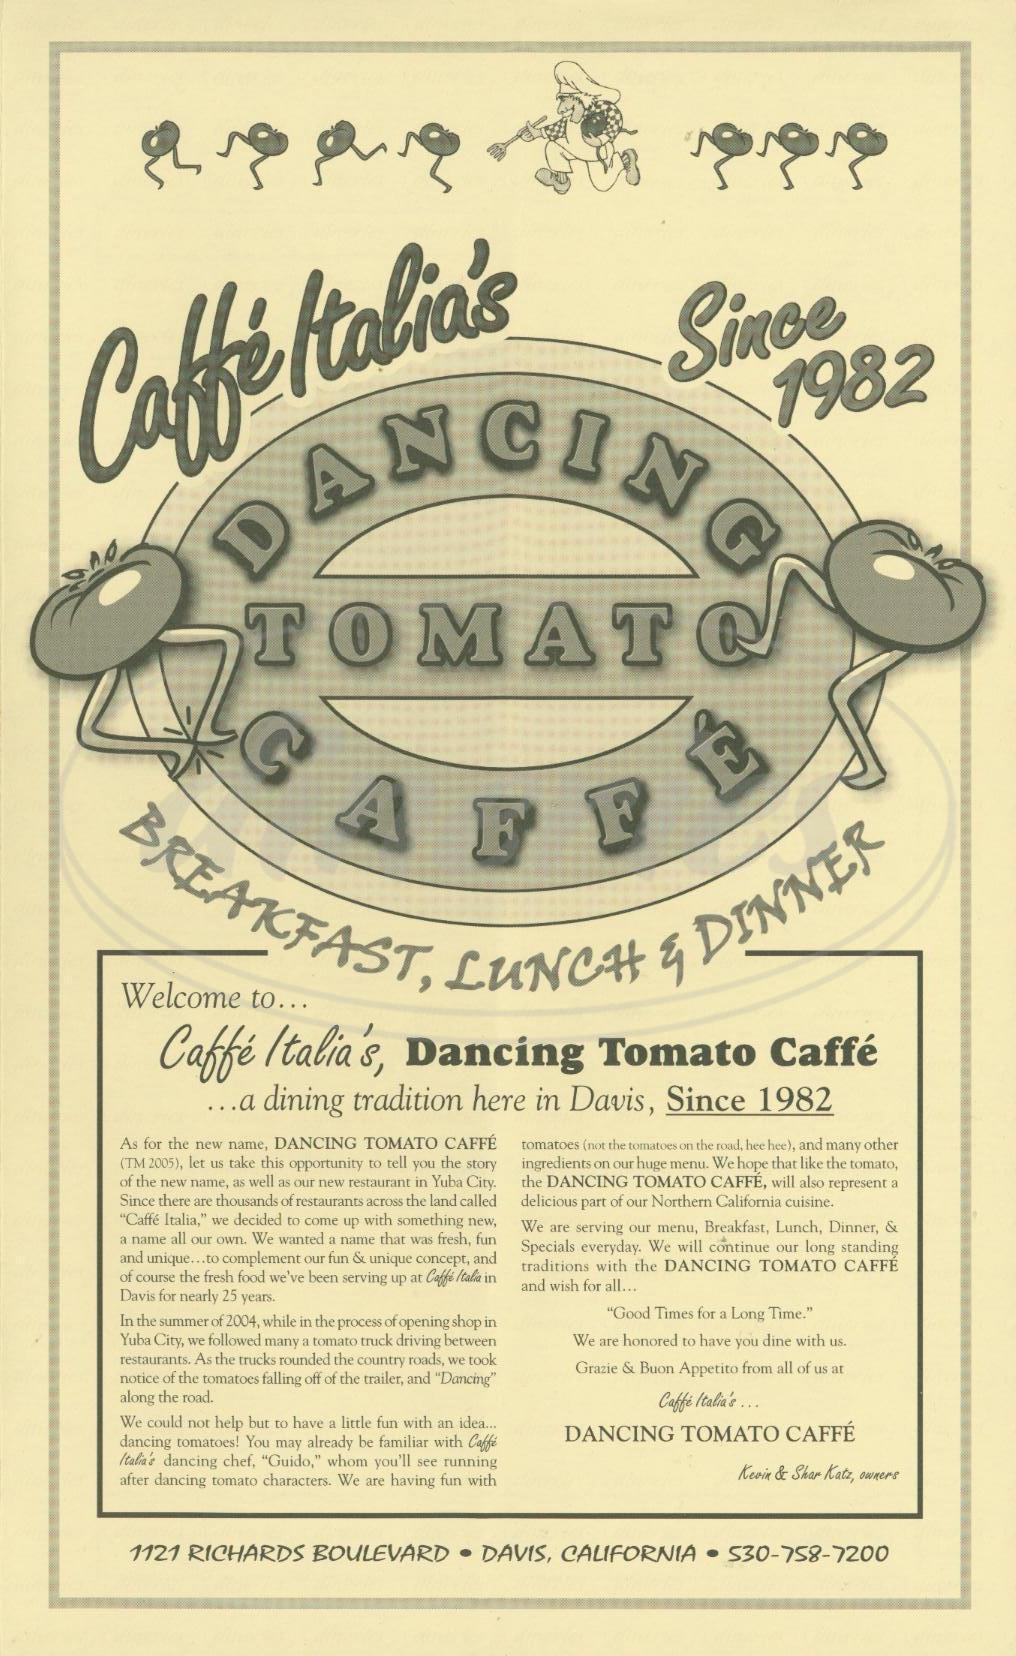 menu for Caffe Italia's Dancing Tomato Caffe